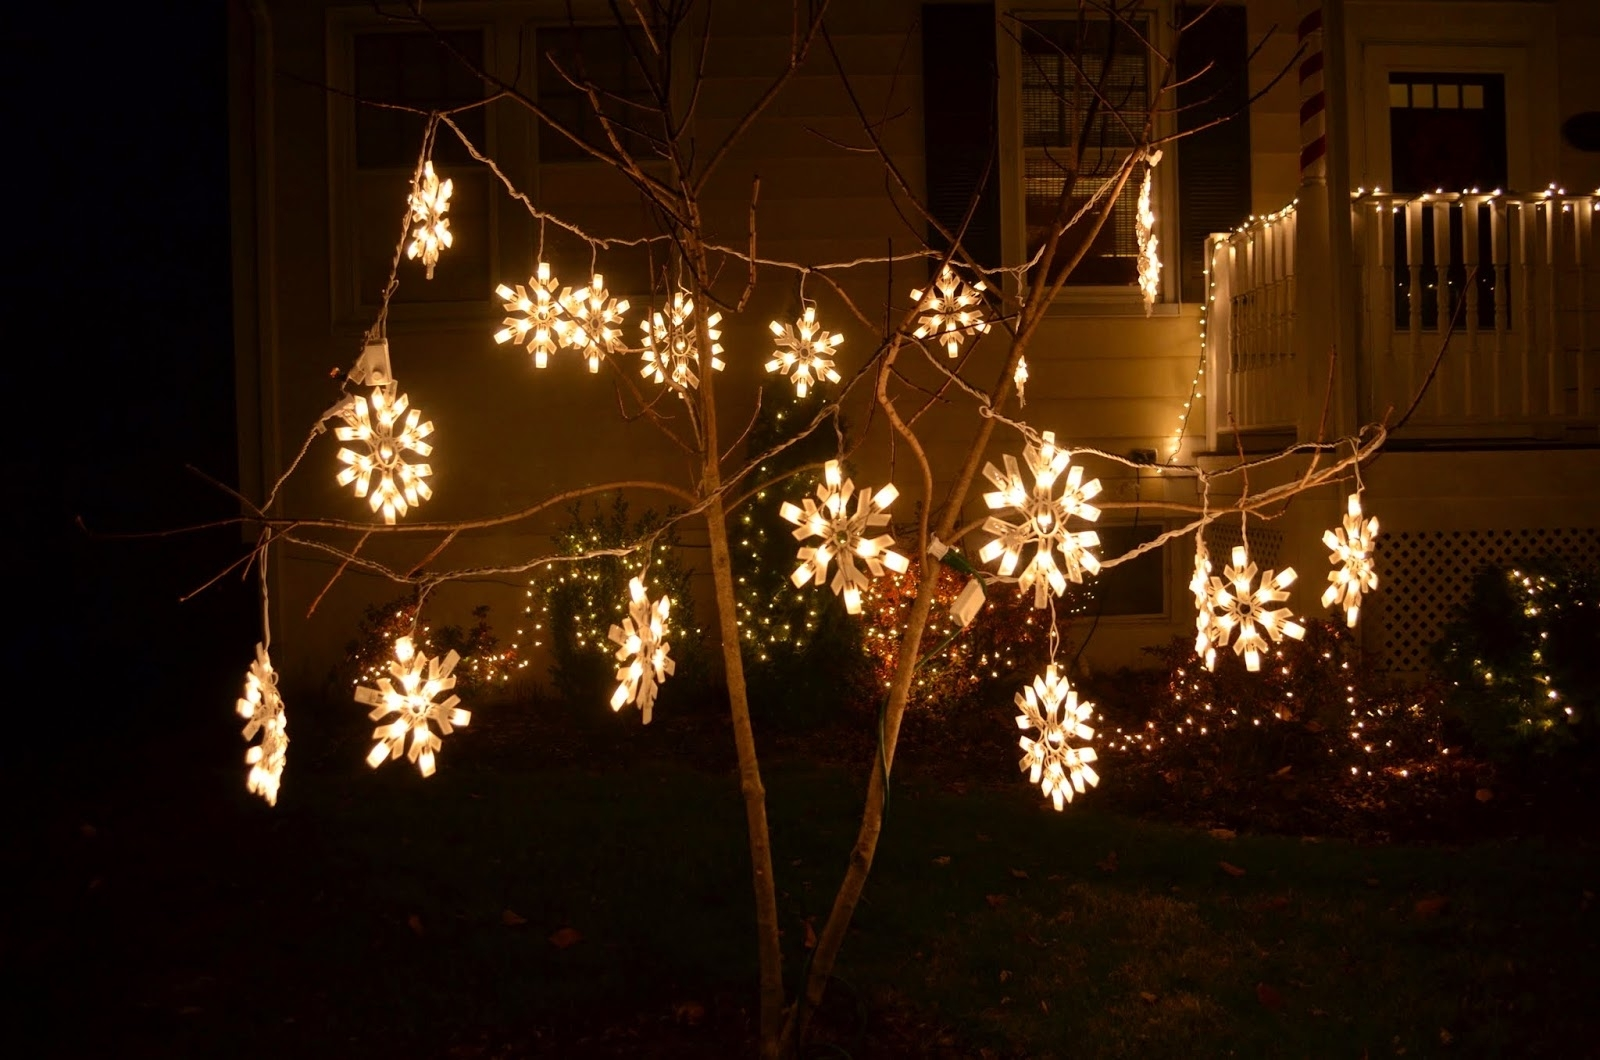 Diy : Home Decor Lighting Outdoor Lights And How Use String Trees Inside Trendy Outdoor Low Voltage Hanging Tree Lights (Gallery 15 of 20)